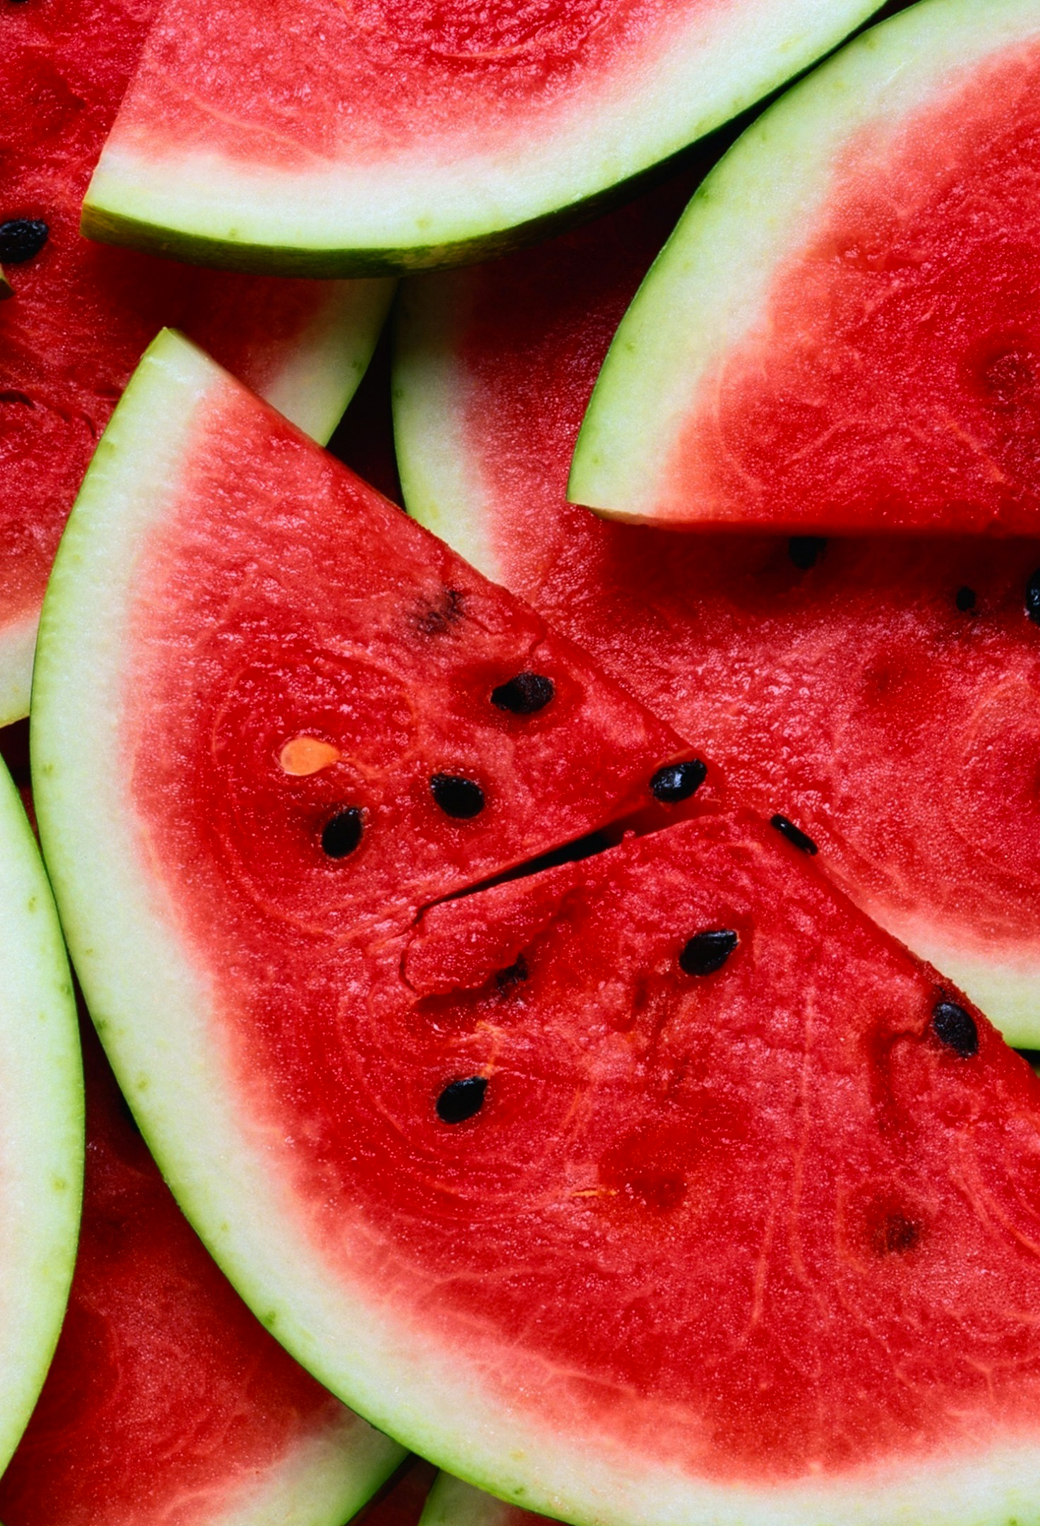 Sliced Watermelon 3Wallpapers Iphone Parallax Sliced Watermelon